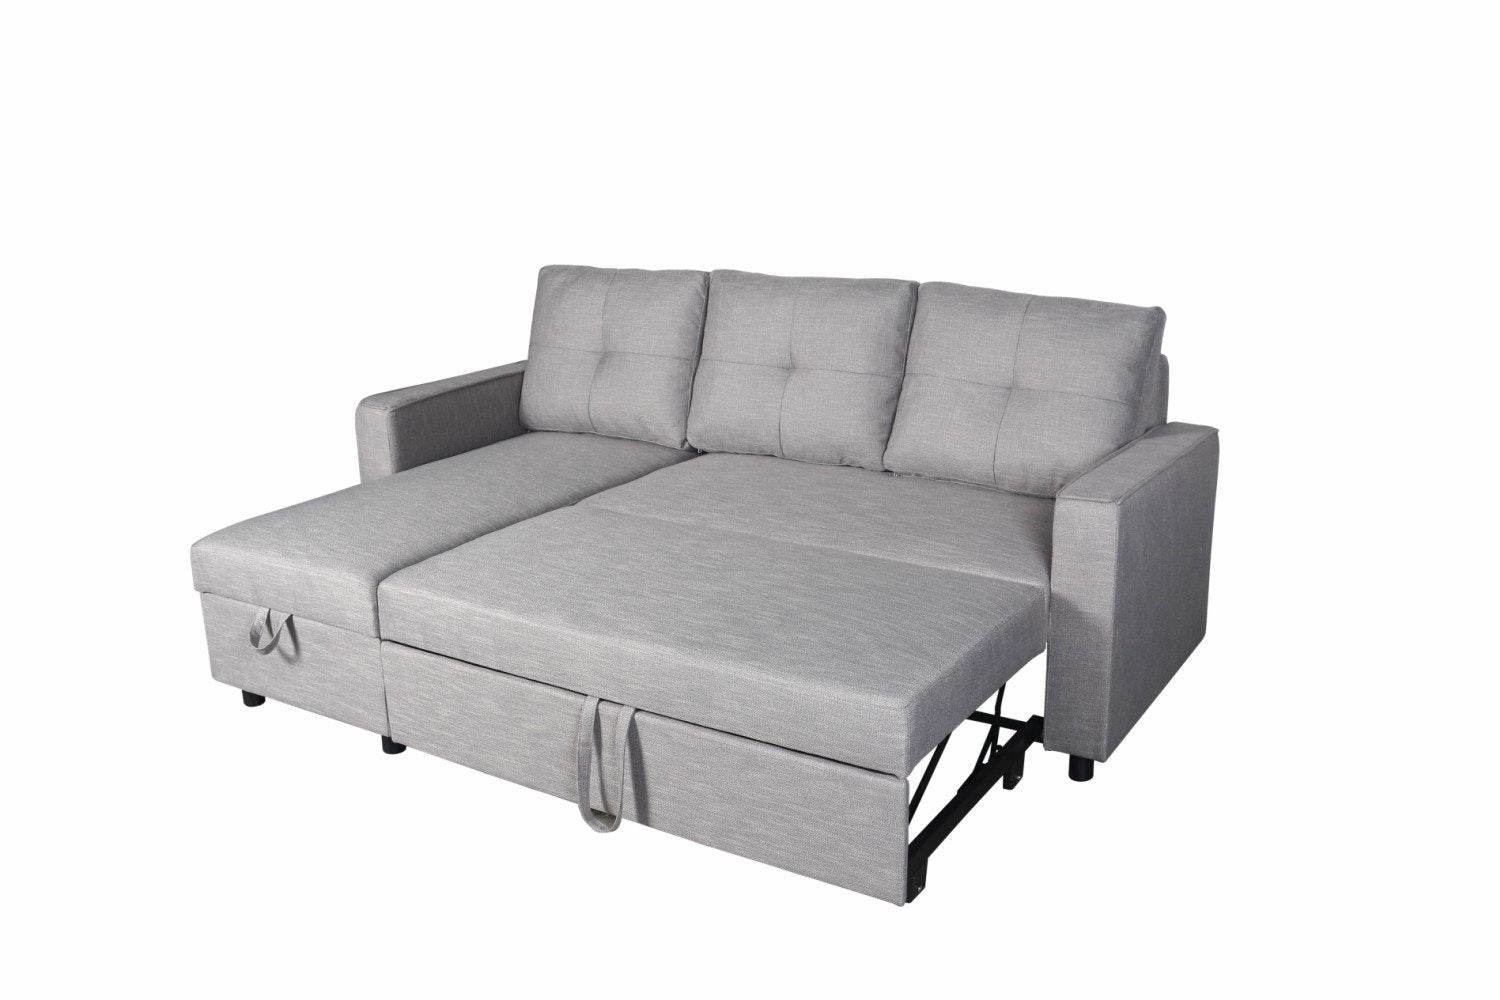 Brady Chaise Sofa with Storage | Grey